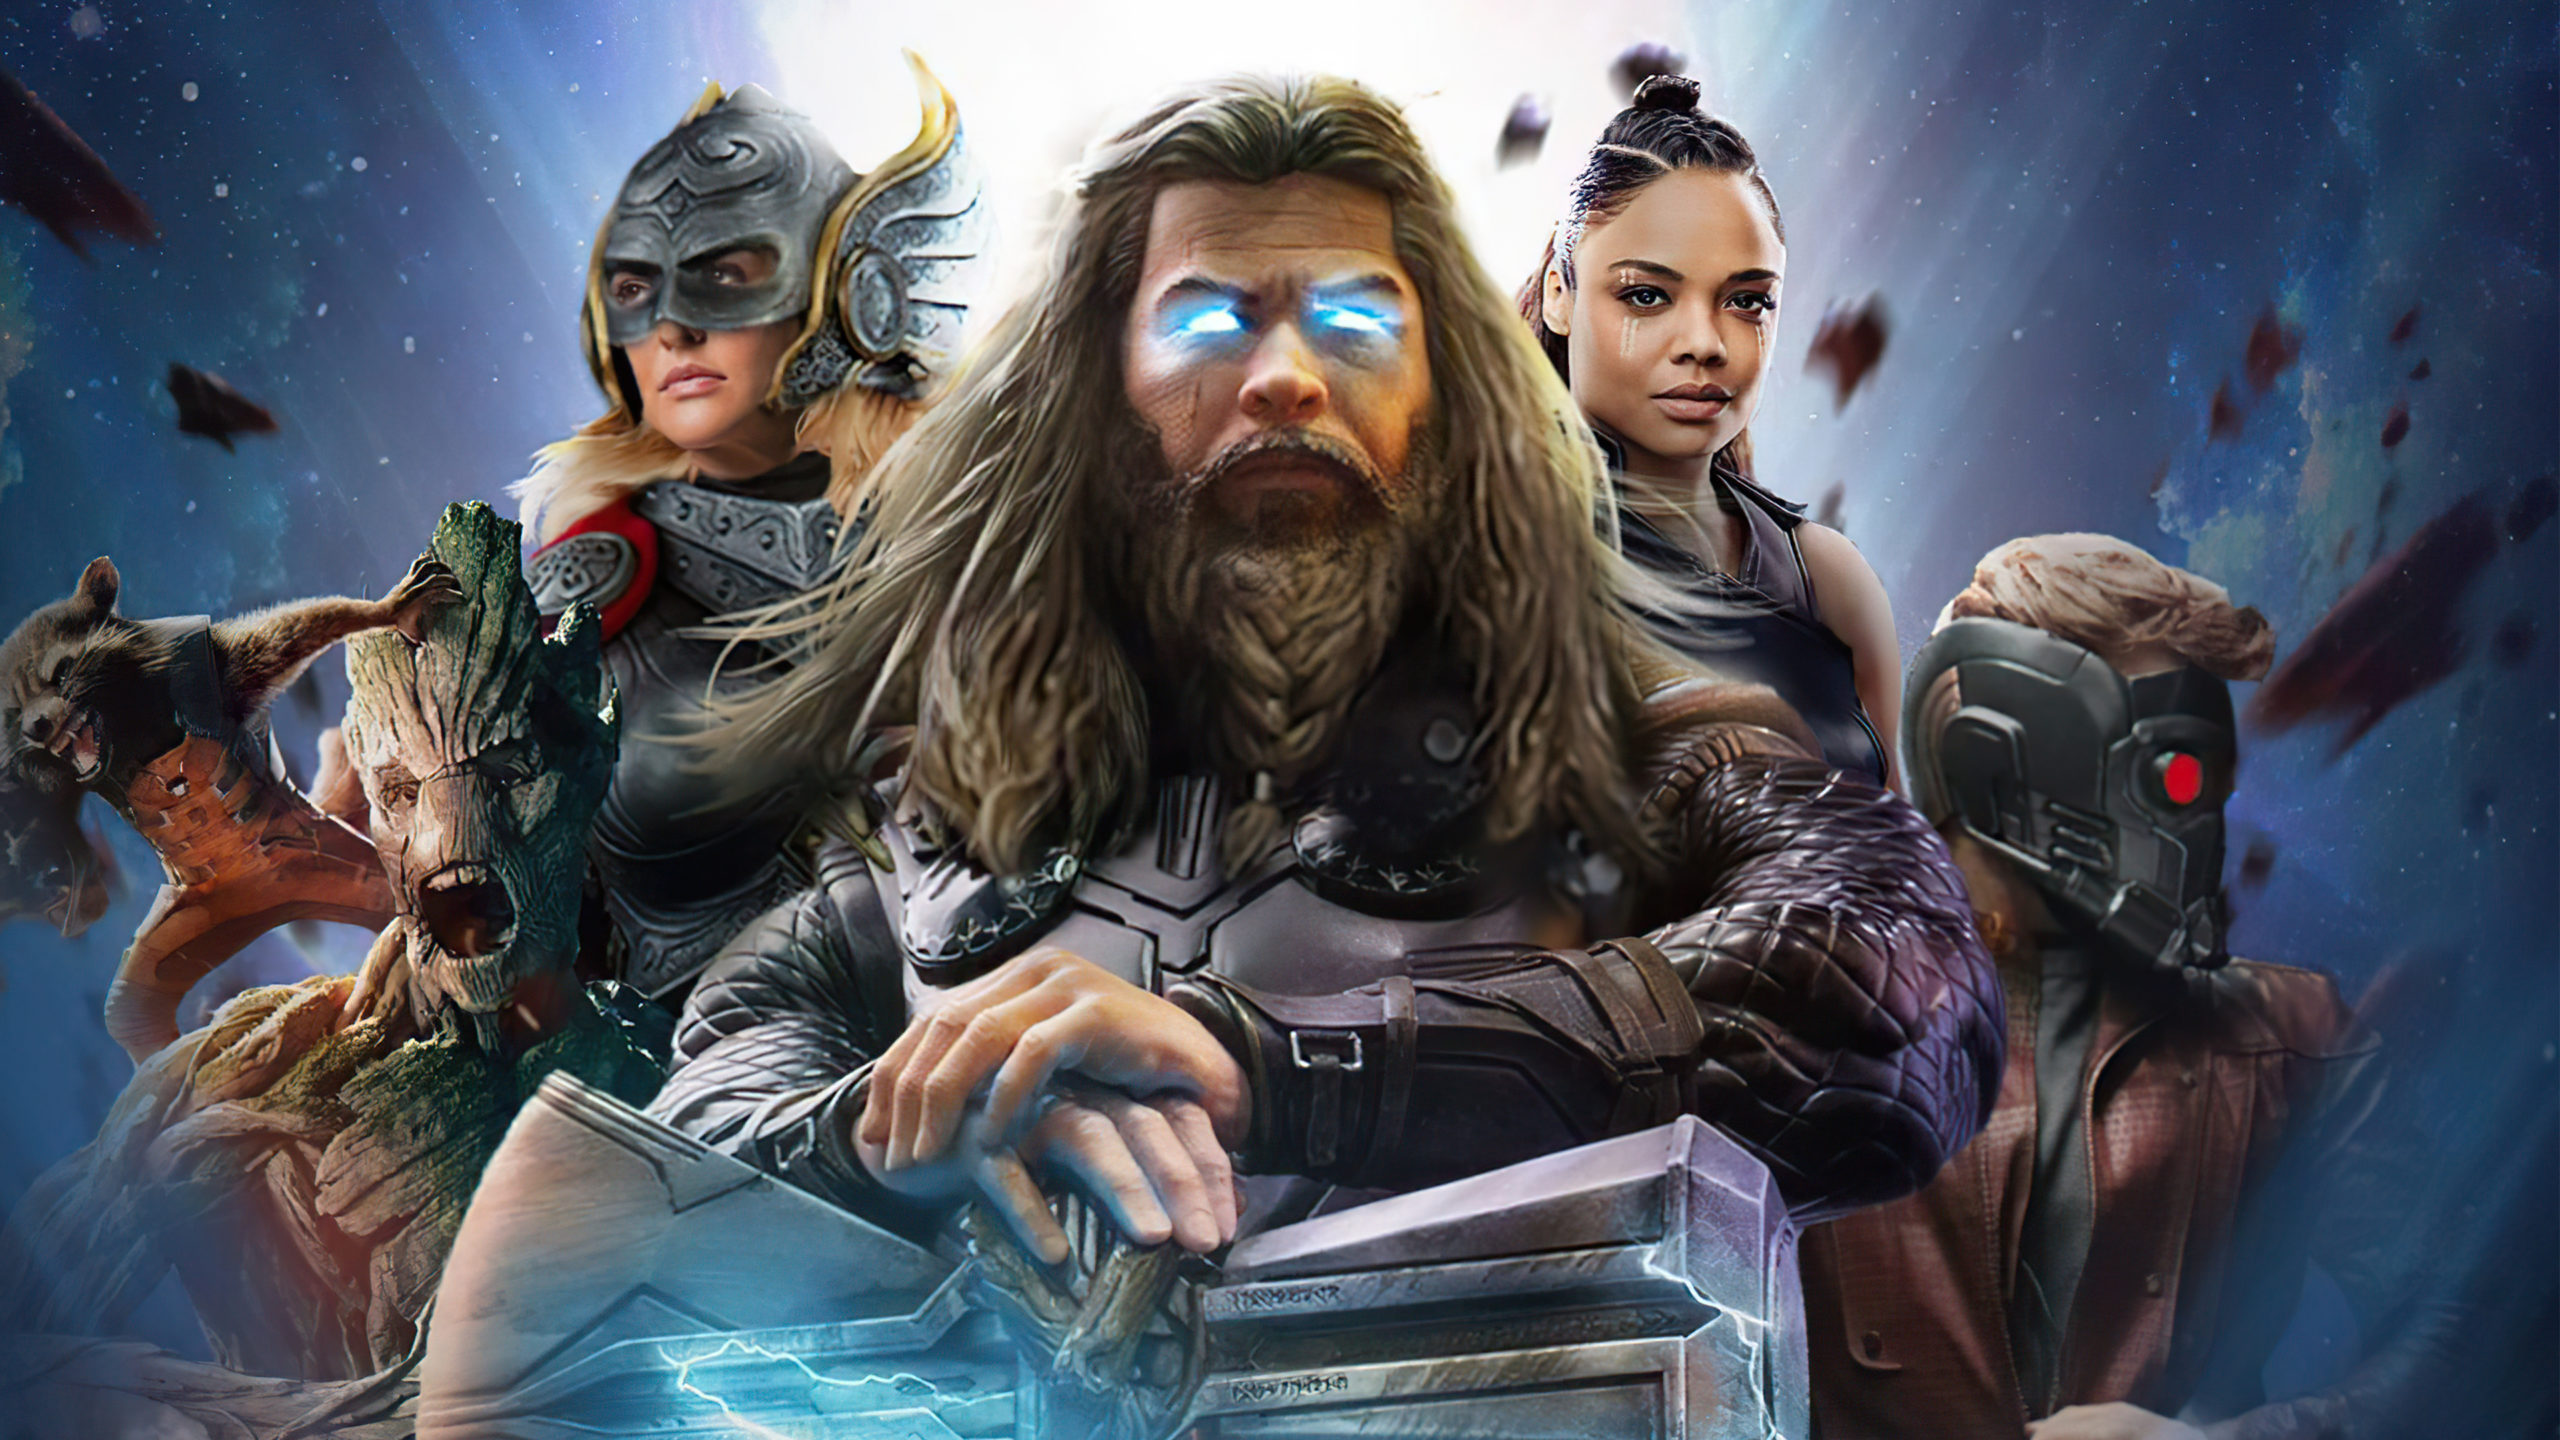 784884 byte size of Thor Love And Thunder Movie 2022 9Y.jpg